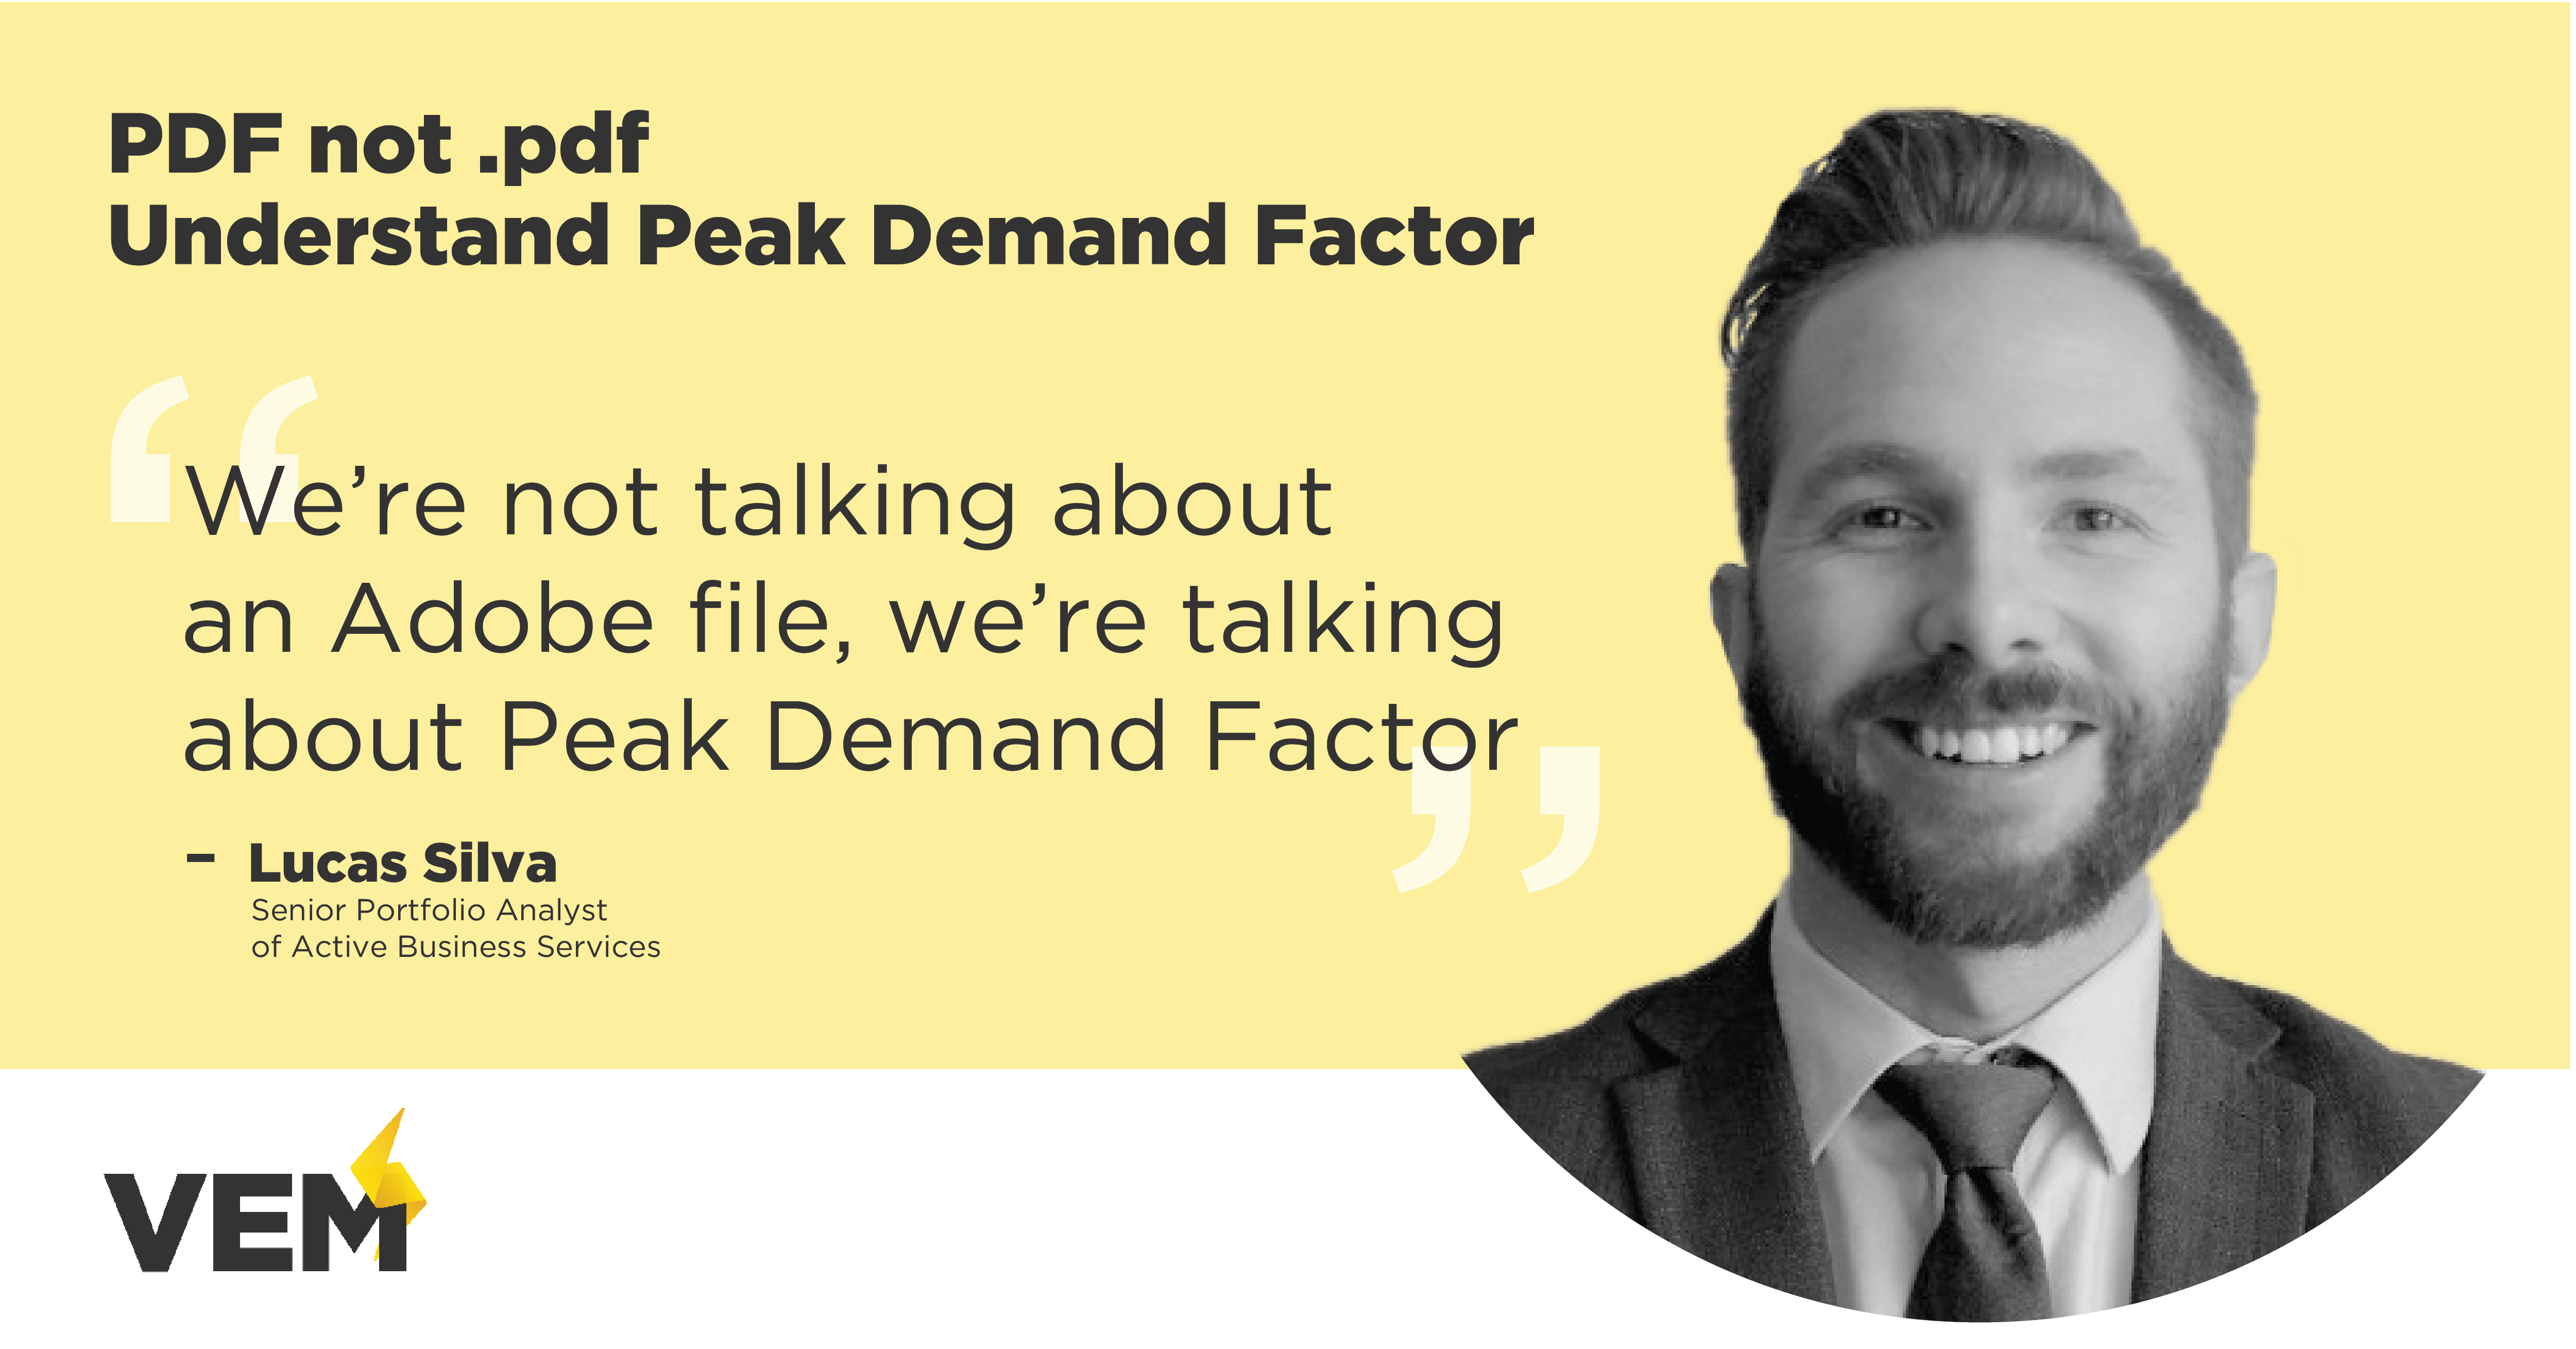 we're not talking about an adobe file, we're talking about Peak Demand Factor